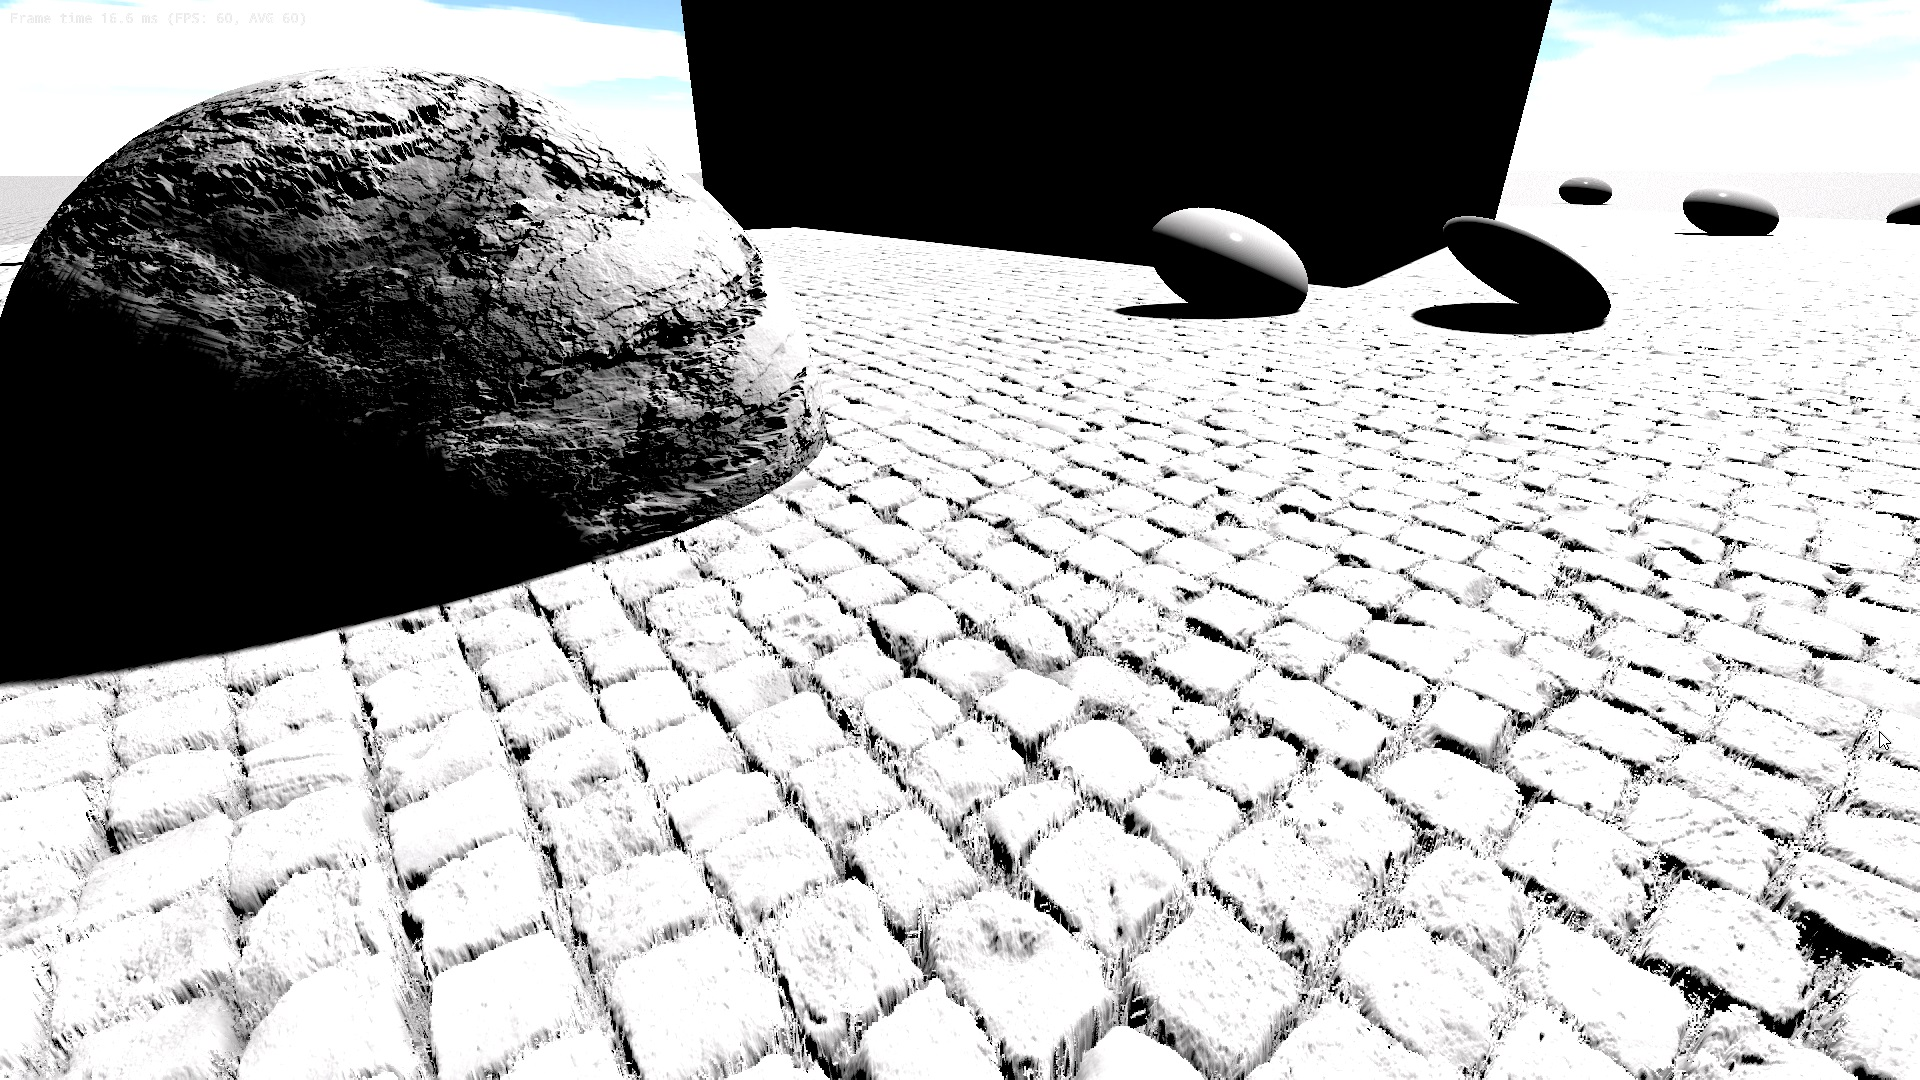 Angie Engine Parallax Mapping (Directional Light) | Angie Engine